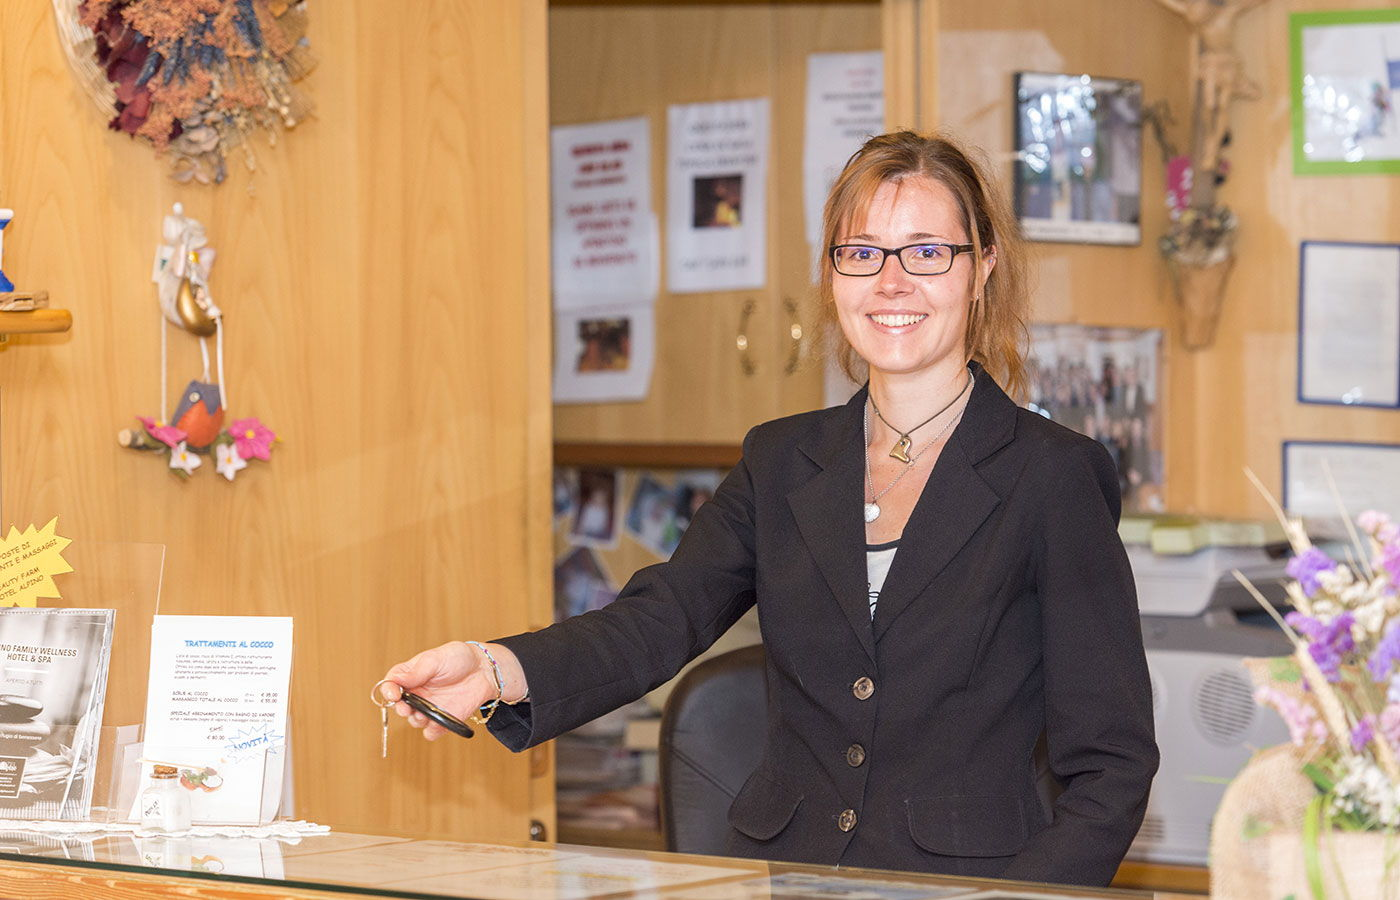 The kind and helpful receptionist of Hotel Alpino